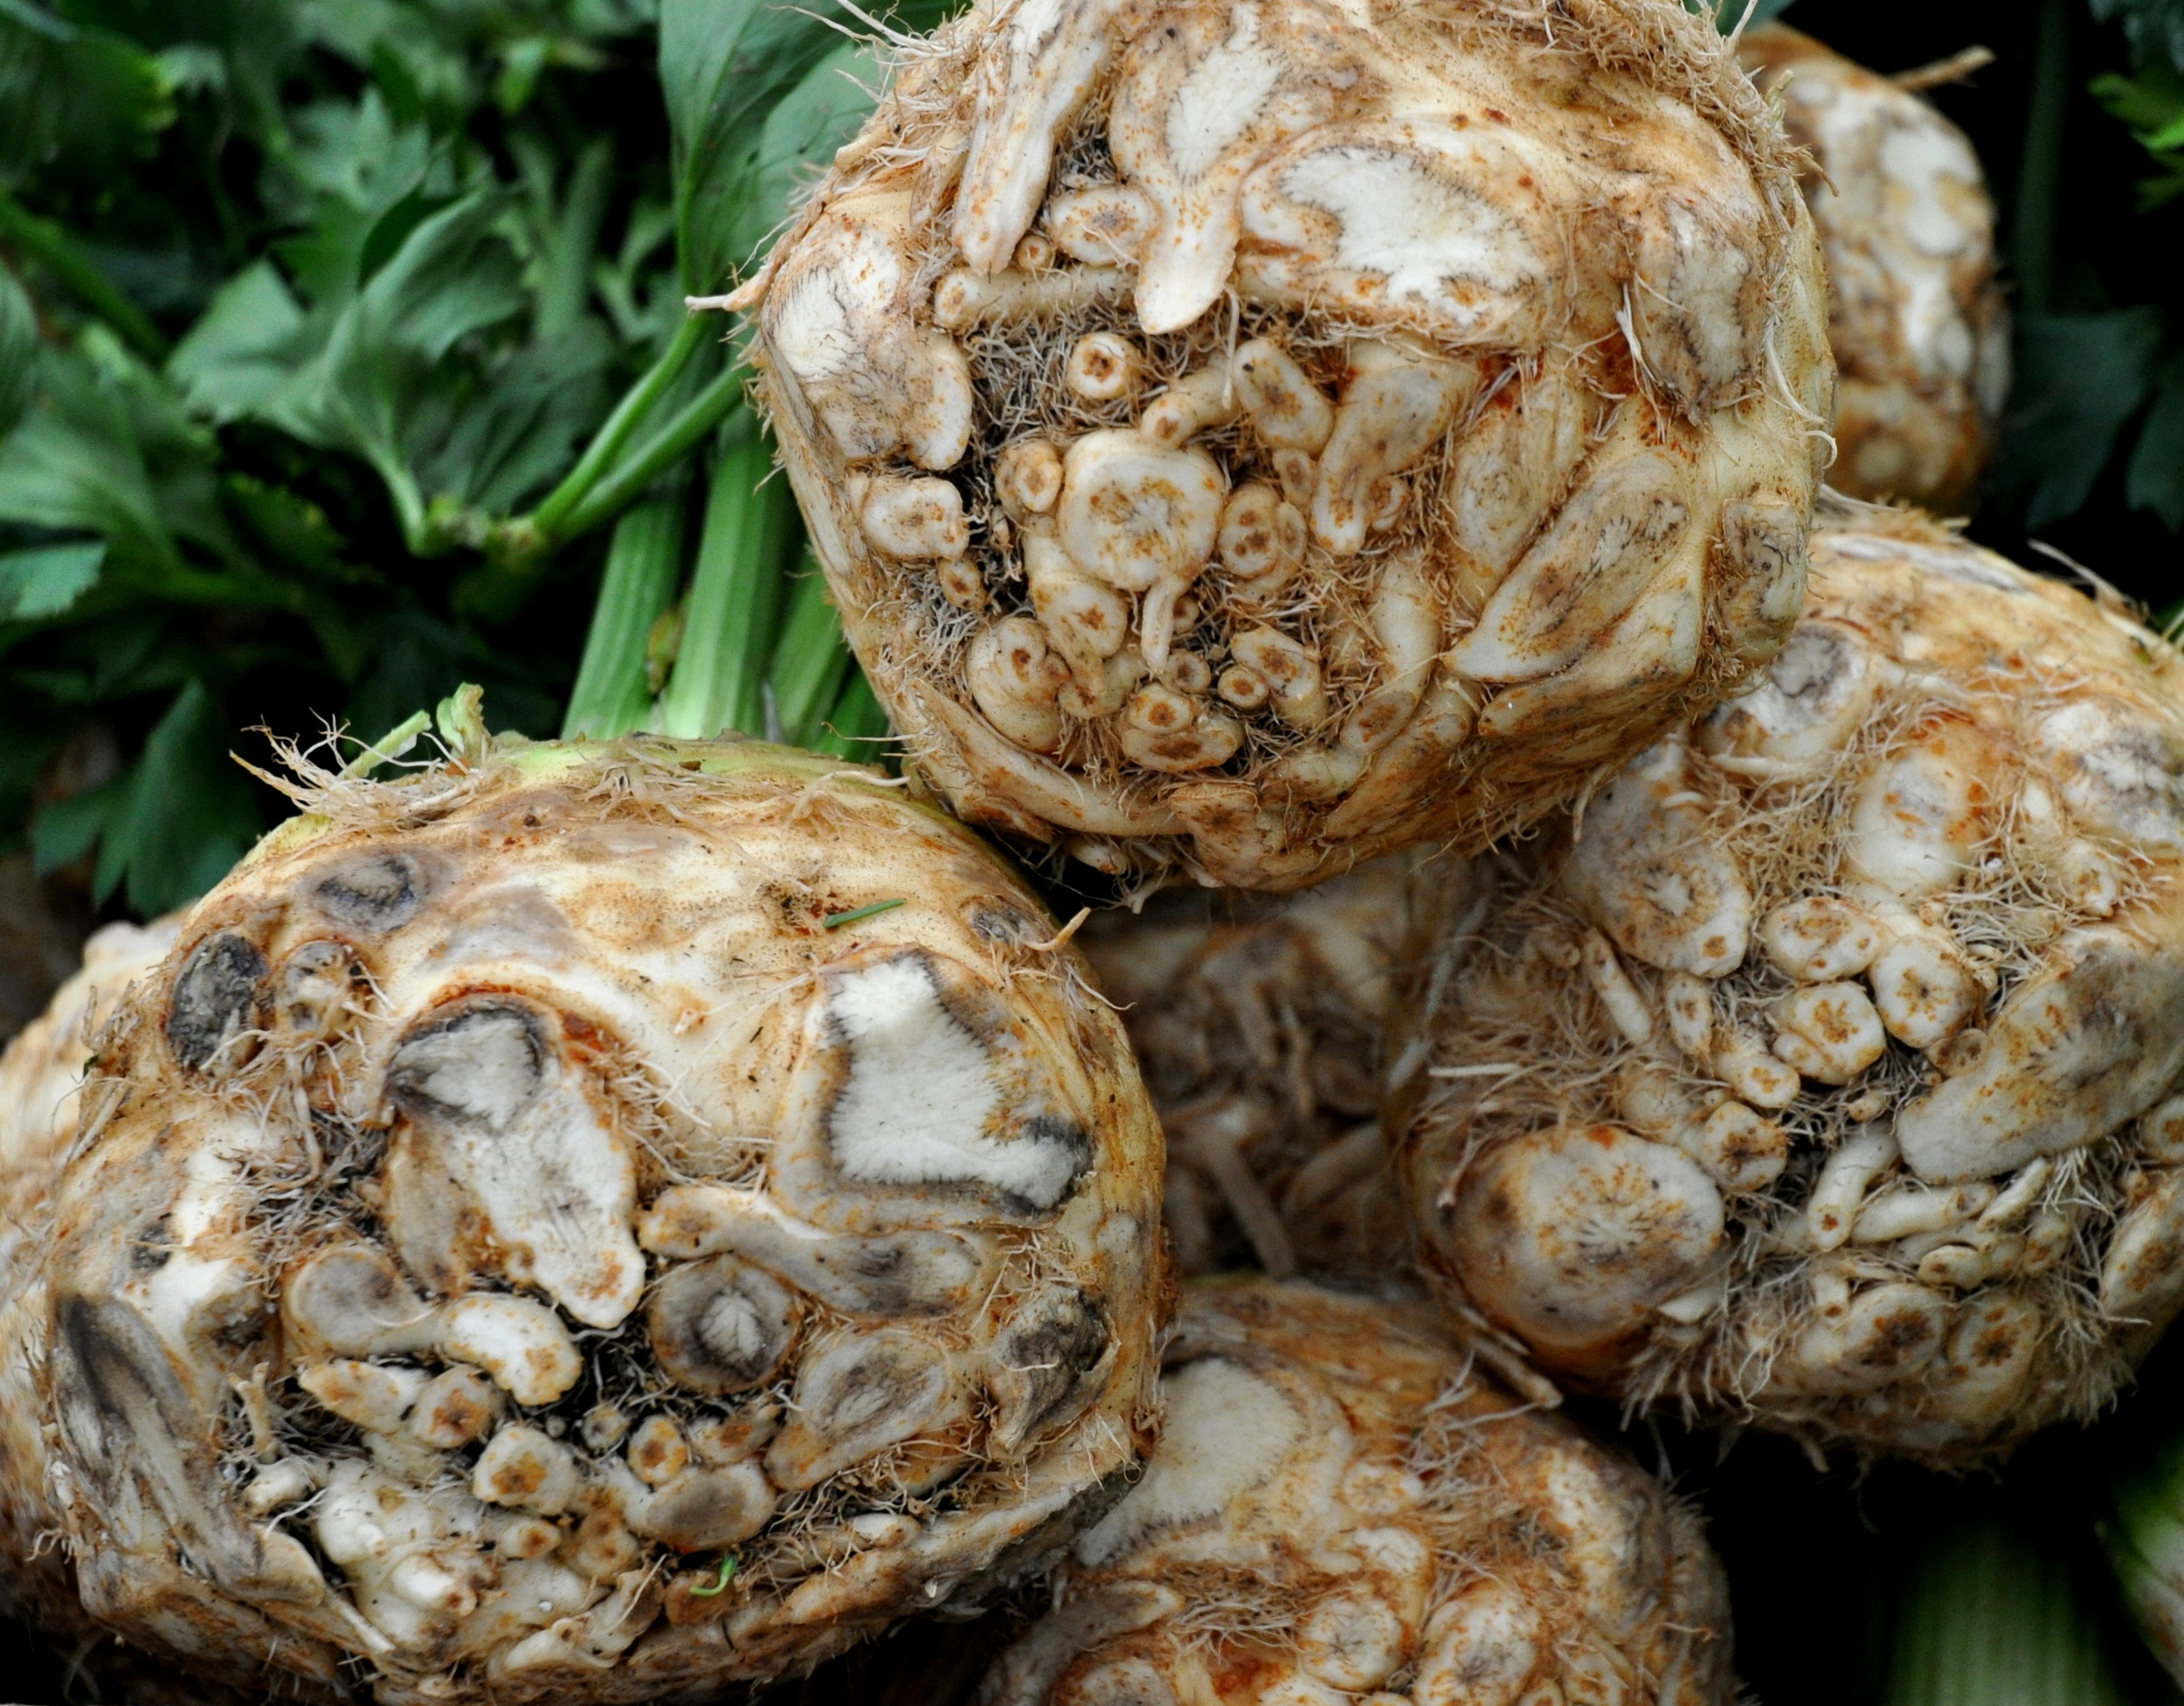 Celery root from Boistfort Valley Farm. Photo copyright 2013 by Zachary D. Lyons.